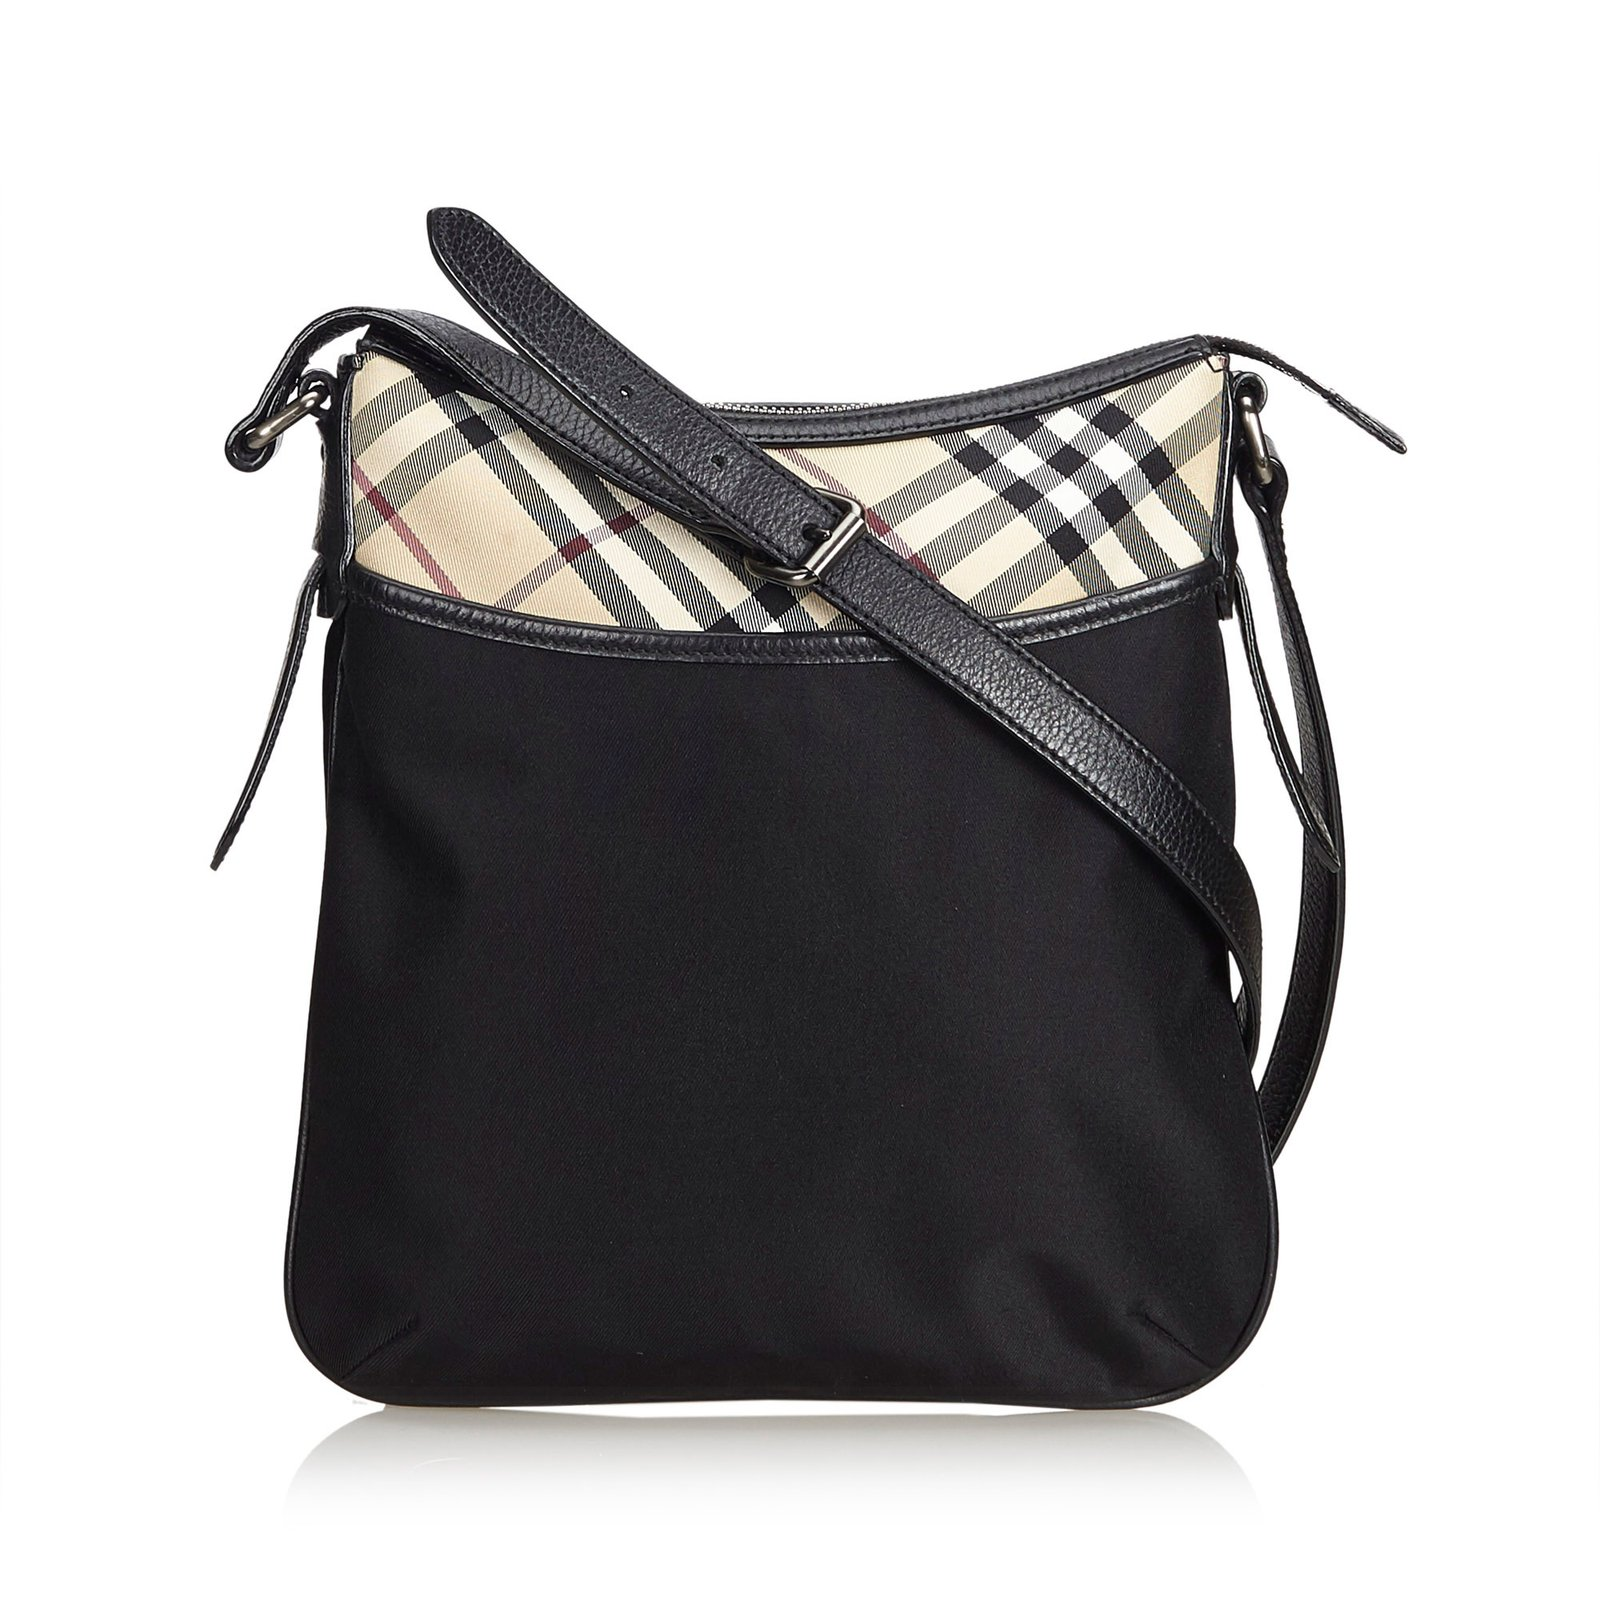 1e35ad7a7e Burberry Plaid Nylon Crossbody Handbags Leather,Other,Nylon,Cloth Black,Multiple  colors